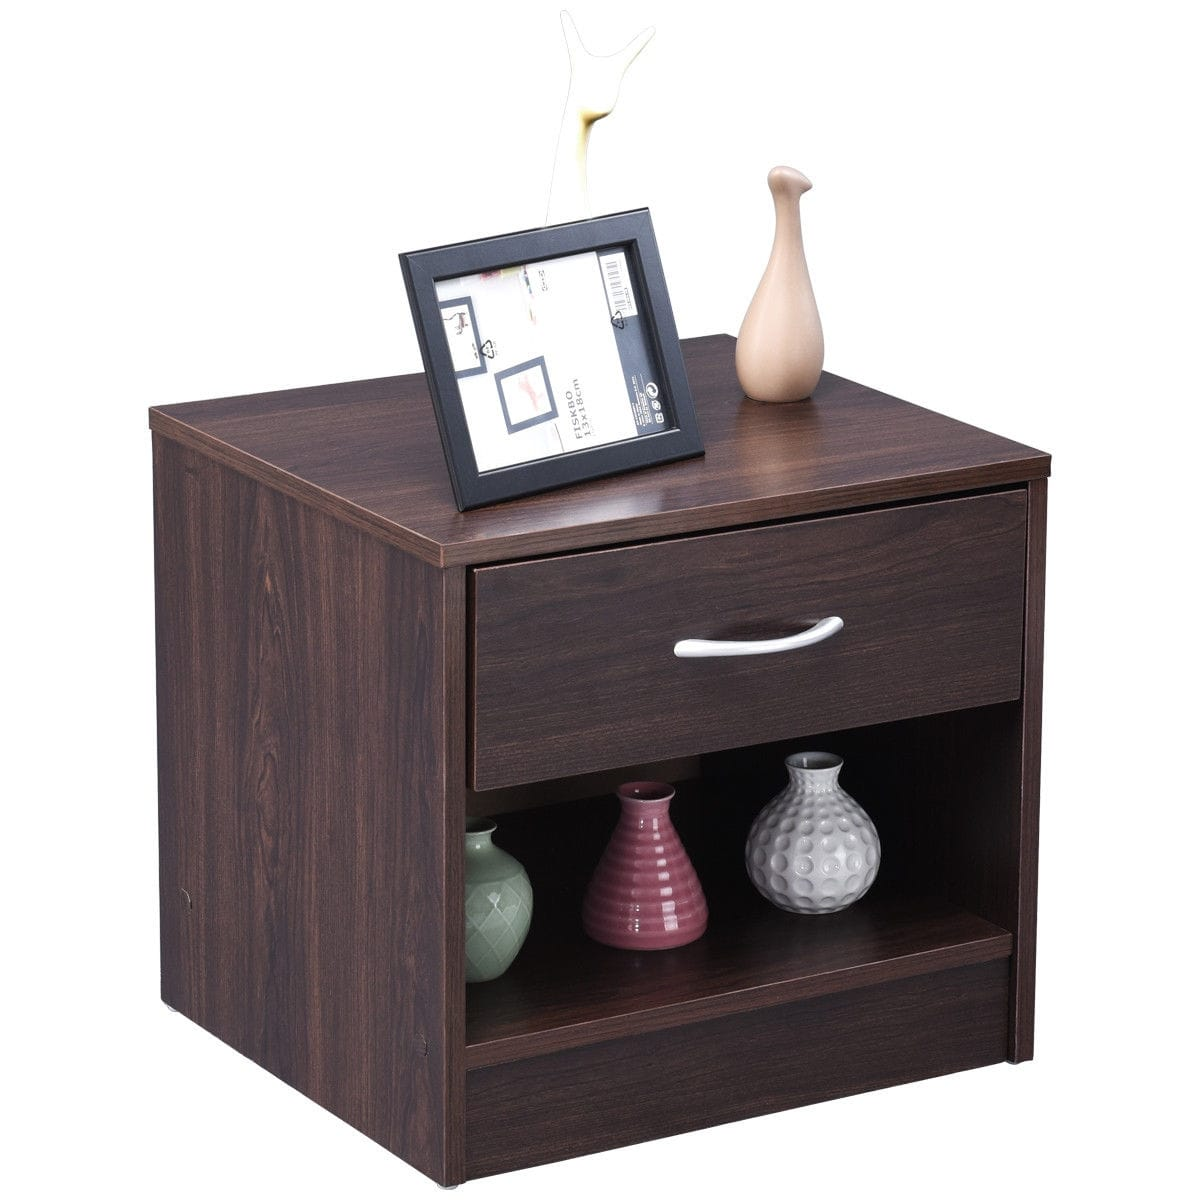 gymax nightstand end table storage display bedroom furniture drawer shelf brown tables sofa cushions larkinhurst earth reviews mirror side ikea coffee sets ese ashley rafferty